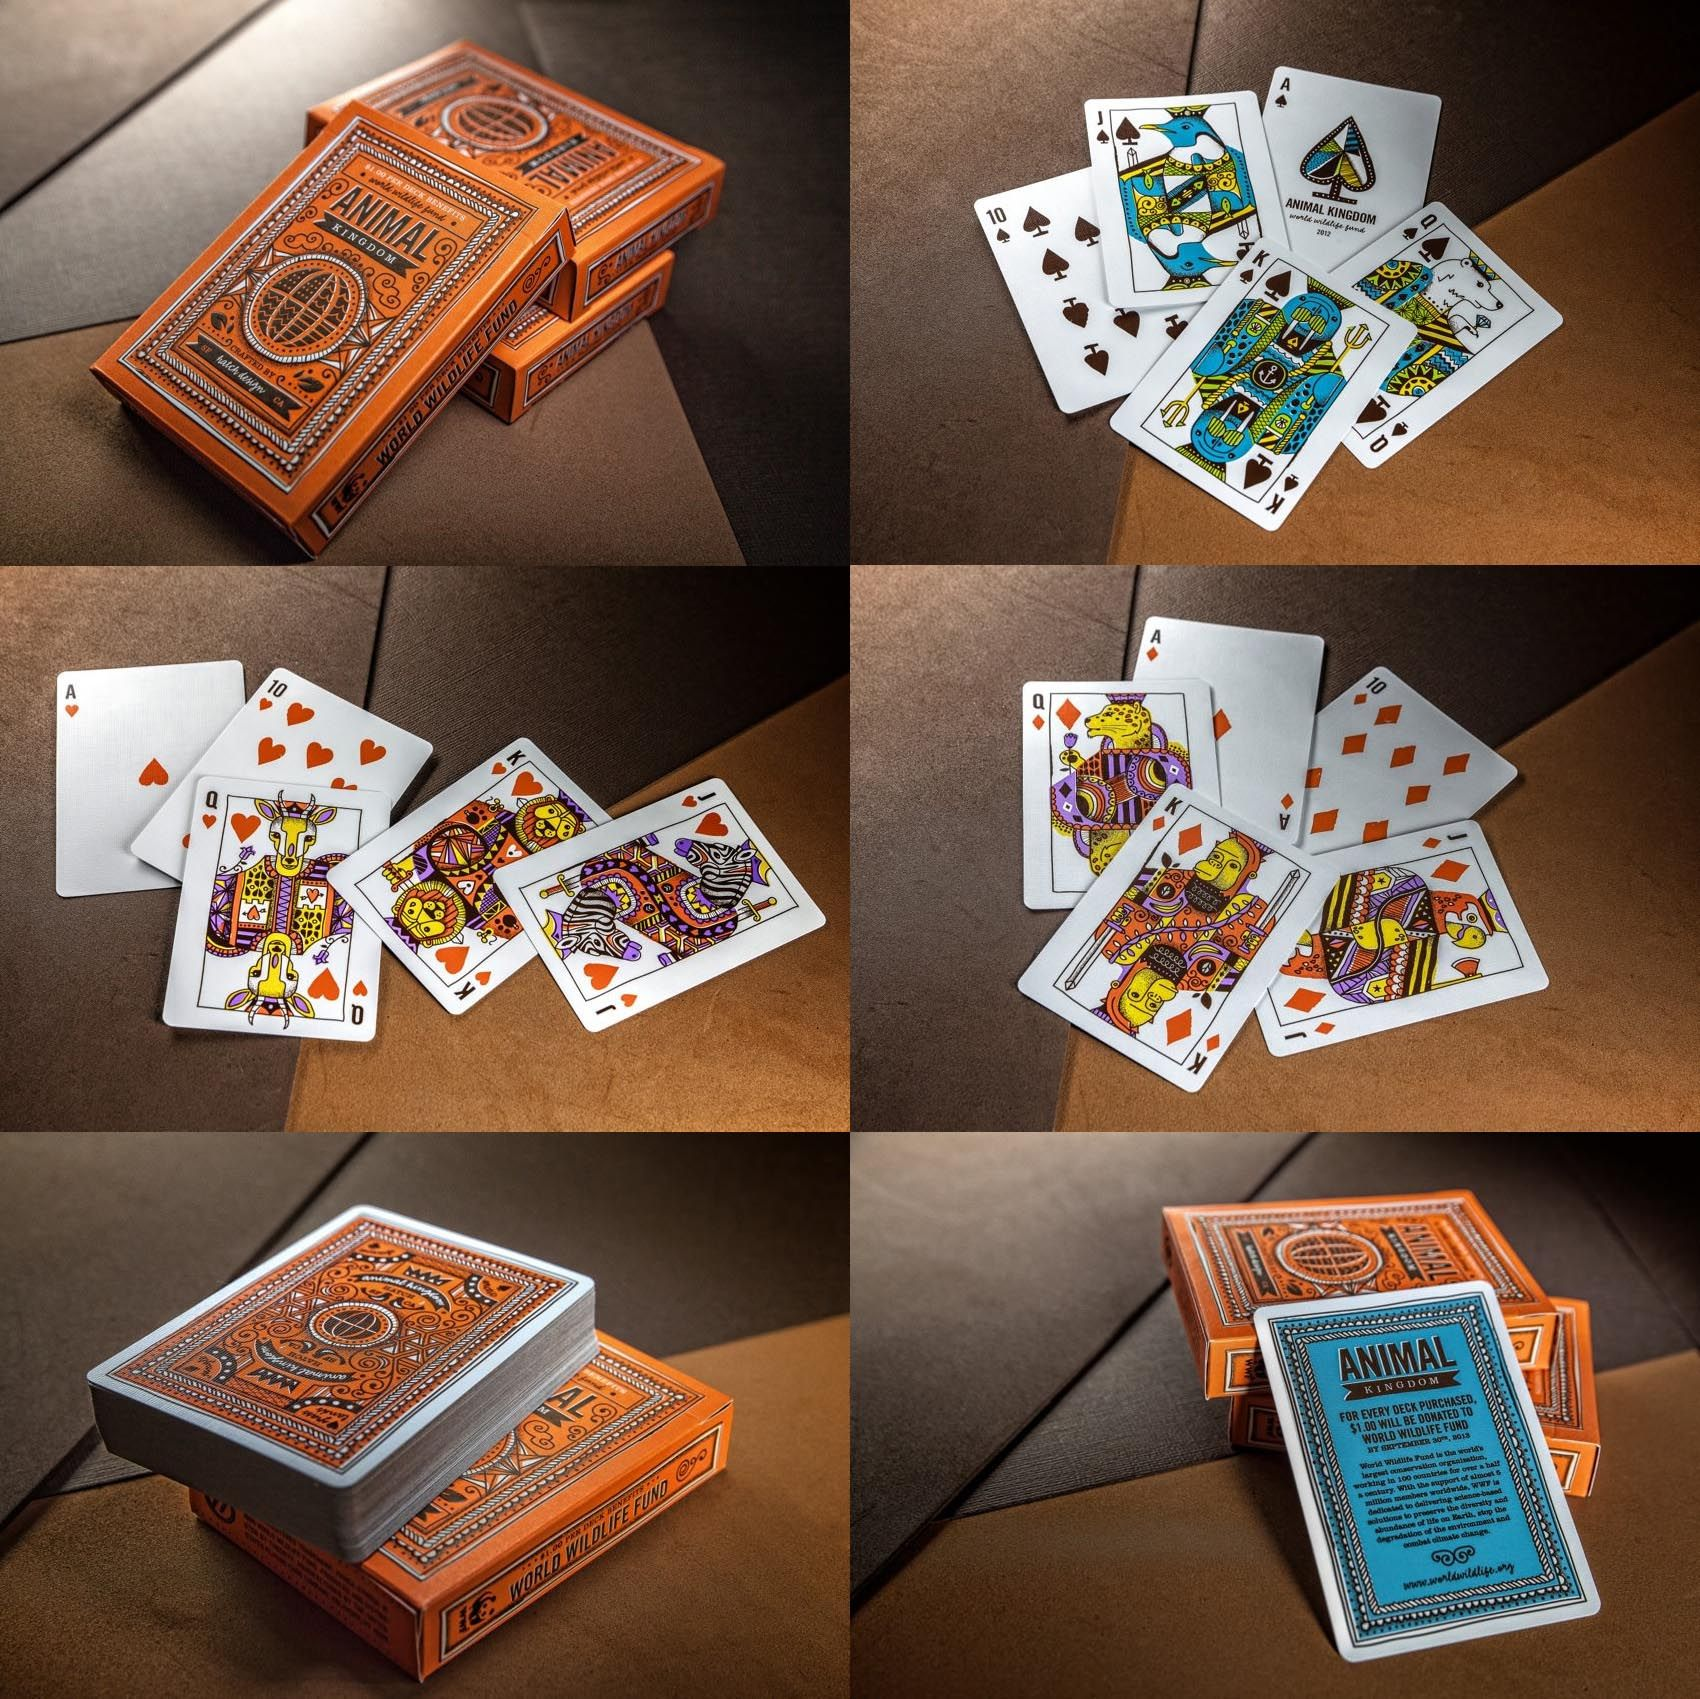 For every deck of Animal Kingdom Playing Cards purchased between today and September 30th, 2014, $1.00 will be donated to World Wildlife Fund. Void in MA, AL, ME, and elsewhere prohibited.  Illustrated by Hatch Design.